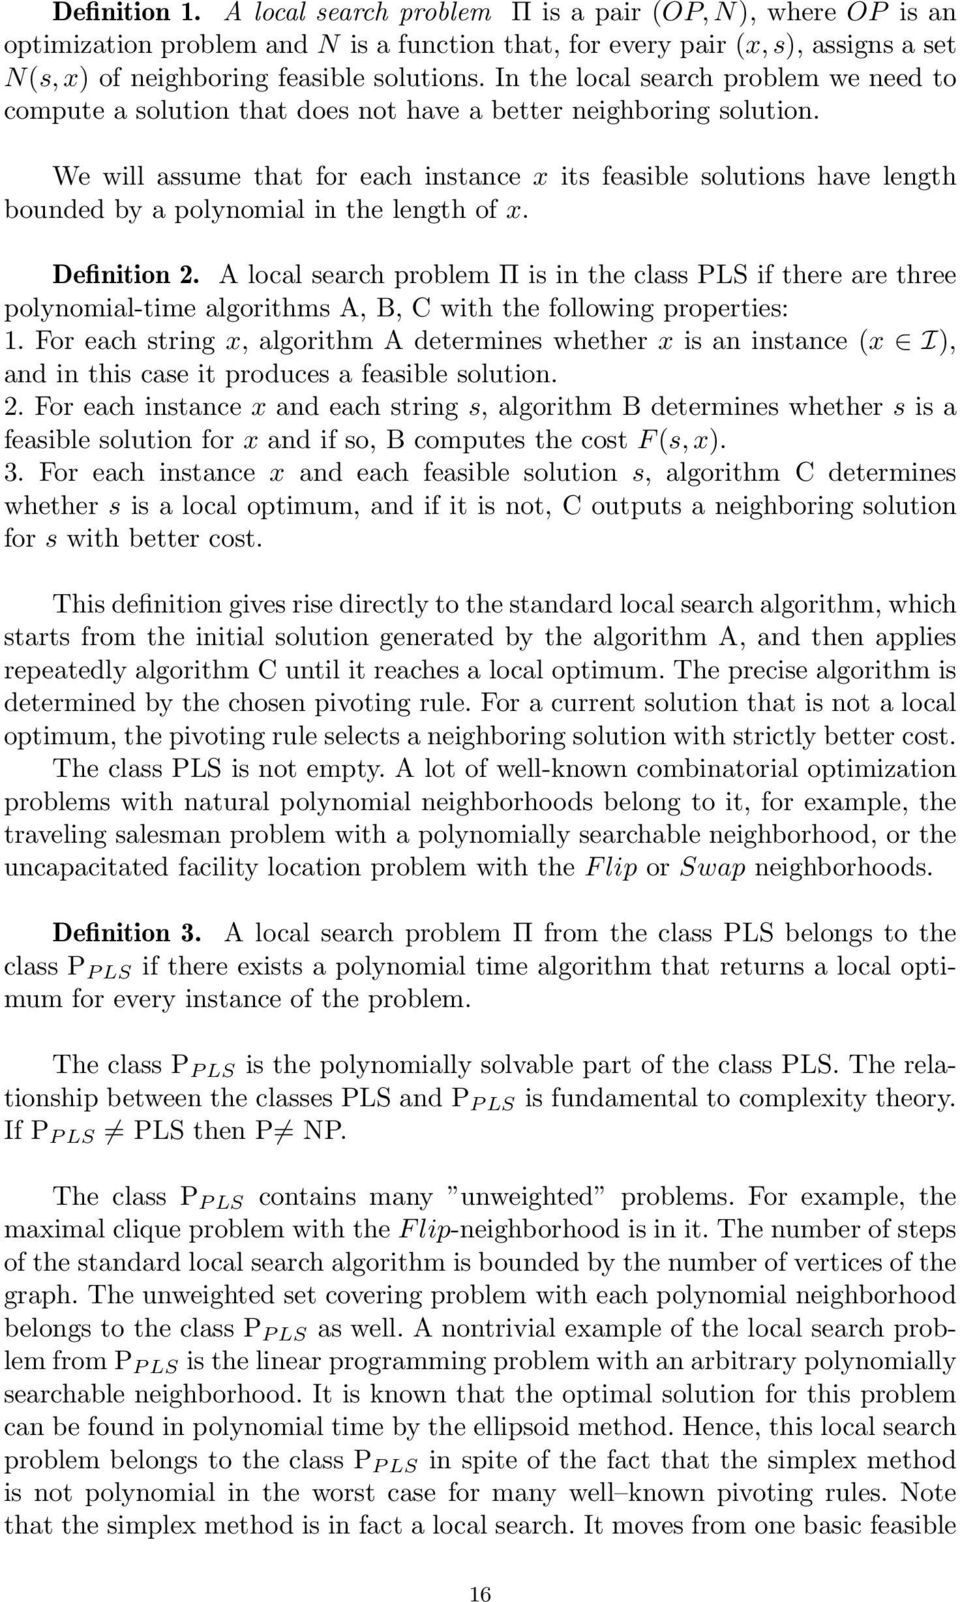 We will assume that for each instance x its feasible solutions have length bounded by a polynomial in the length of x. Definition 2.